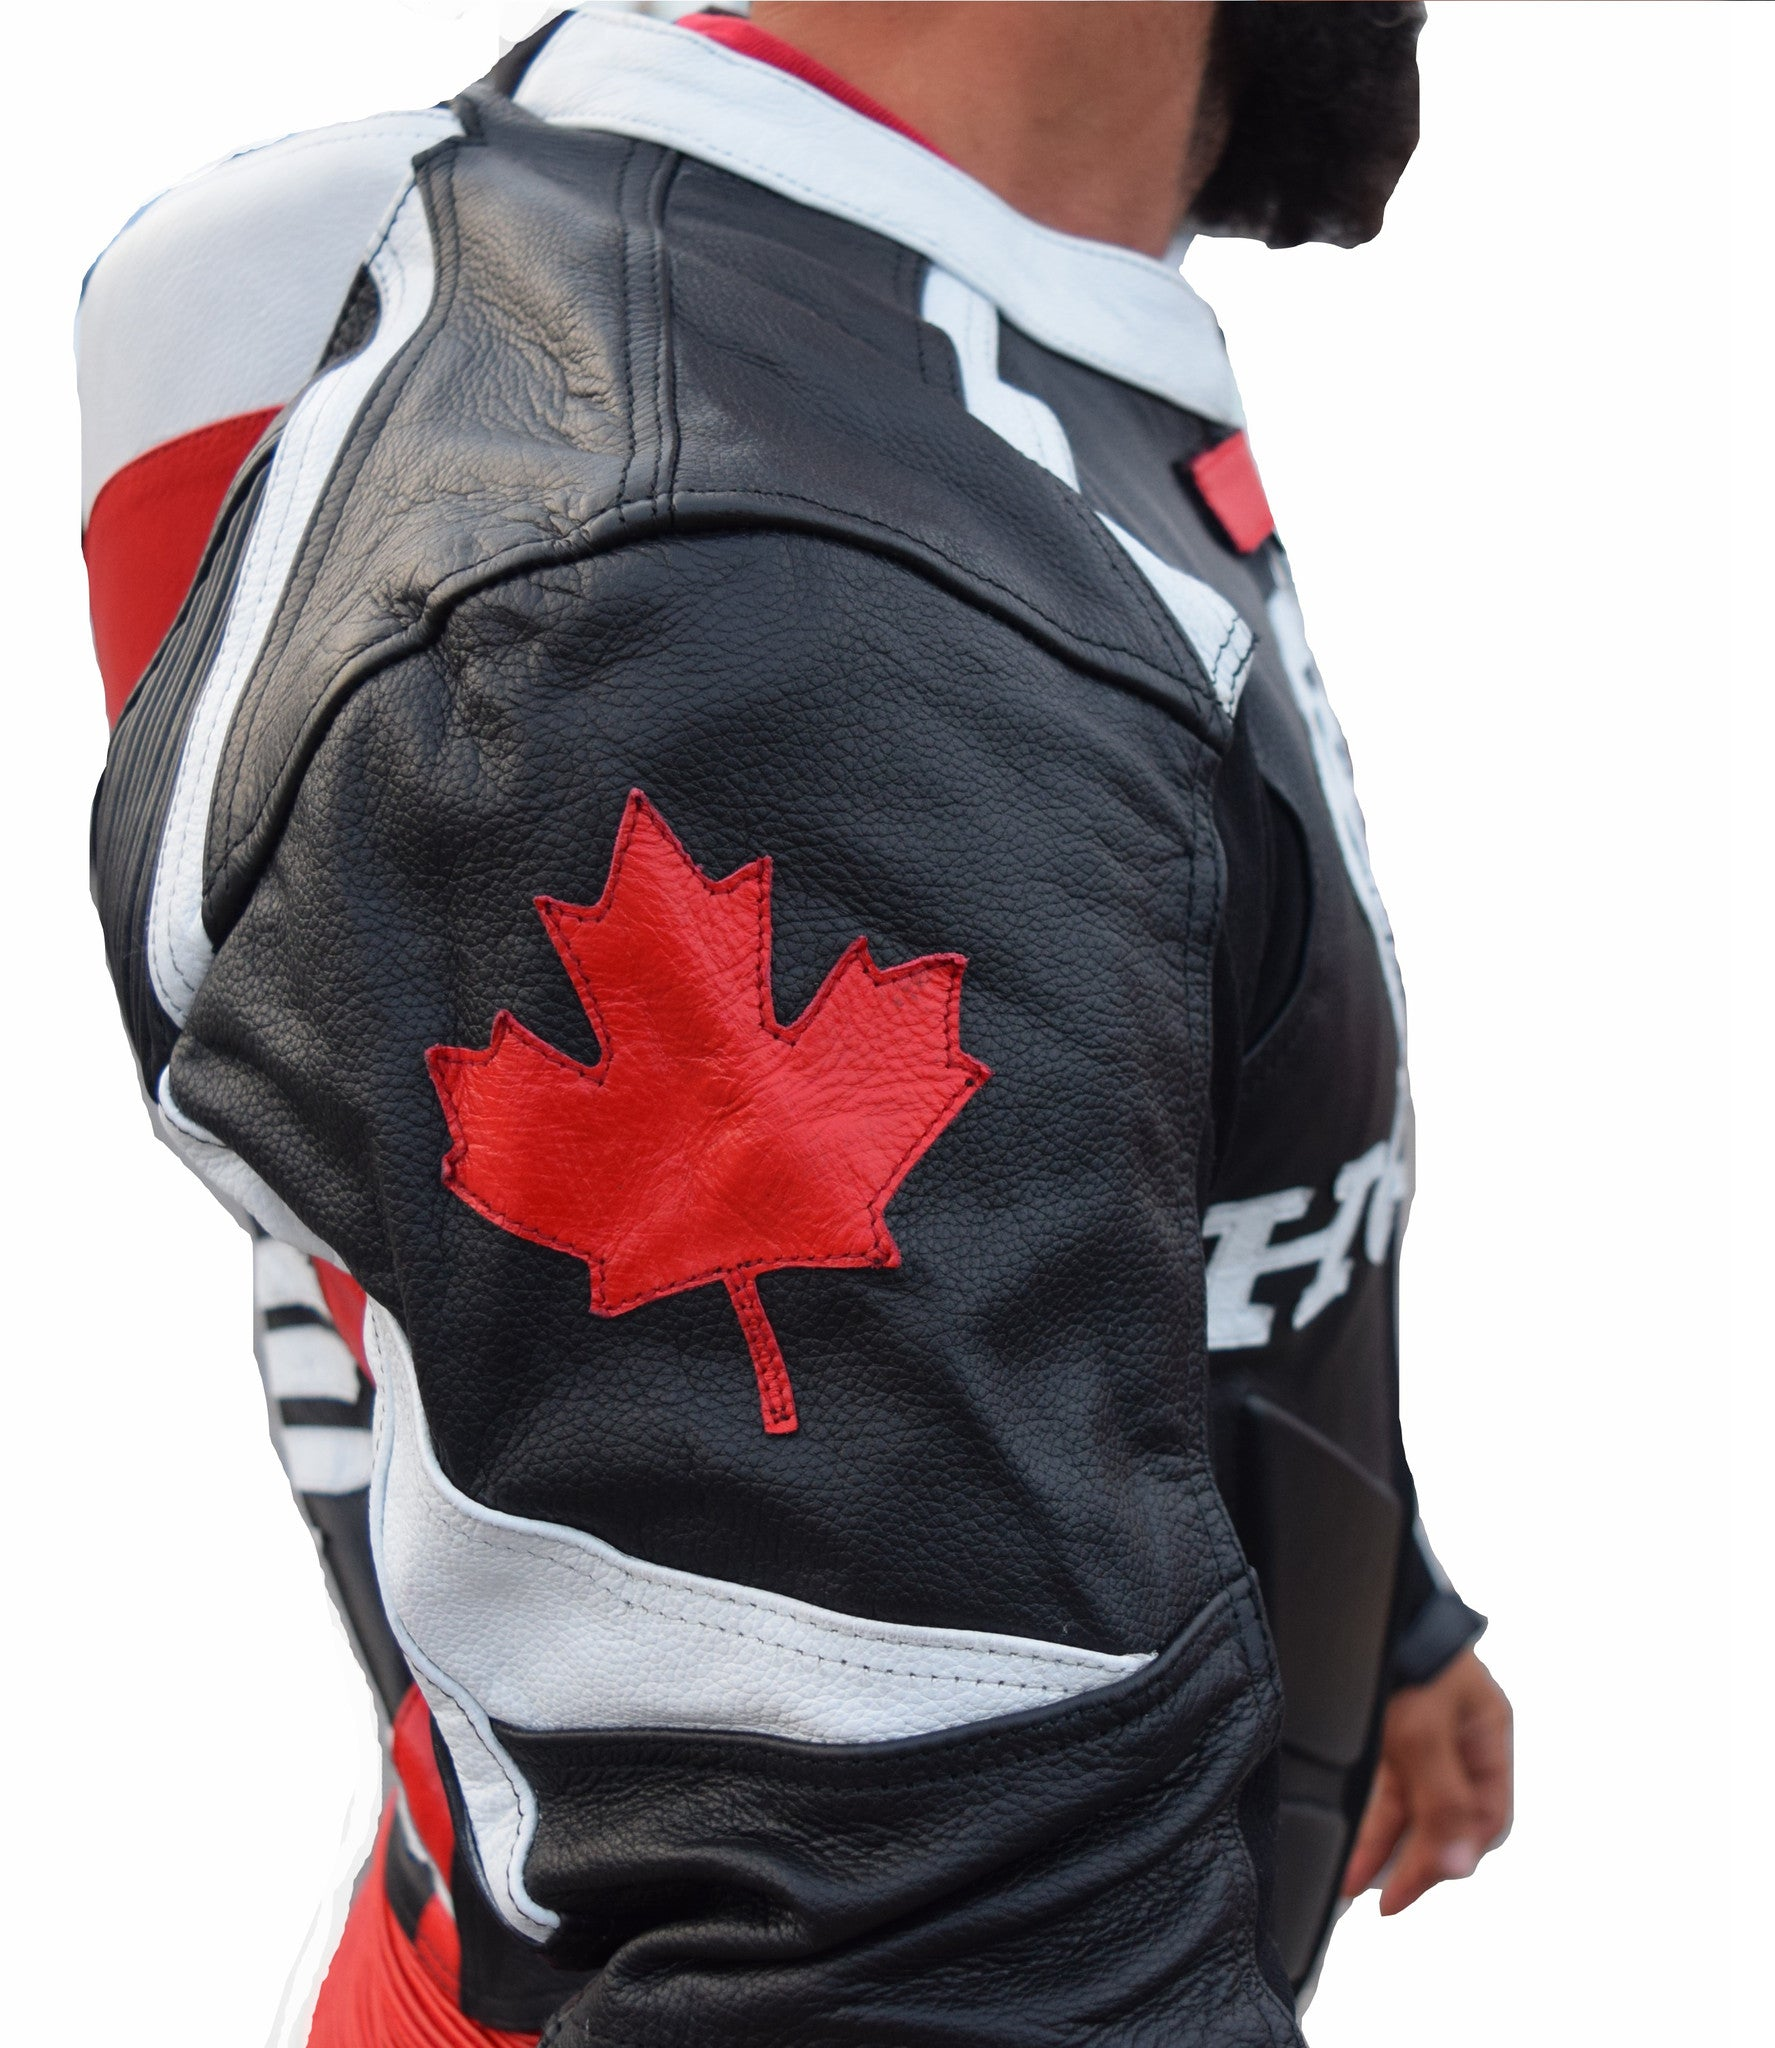 Canadian honda motorcycle leather suit - Lusso Leather - 4